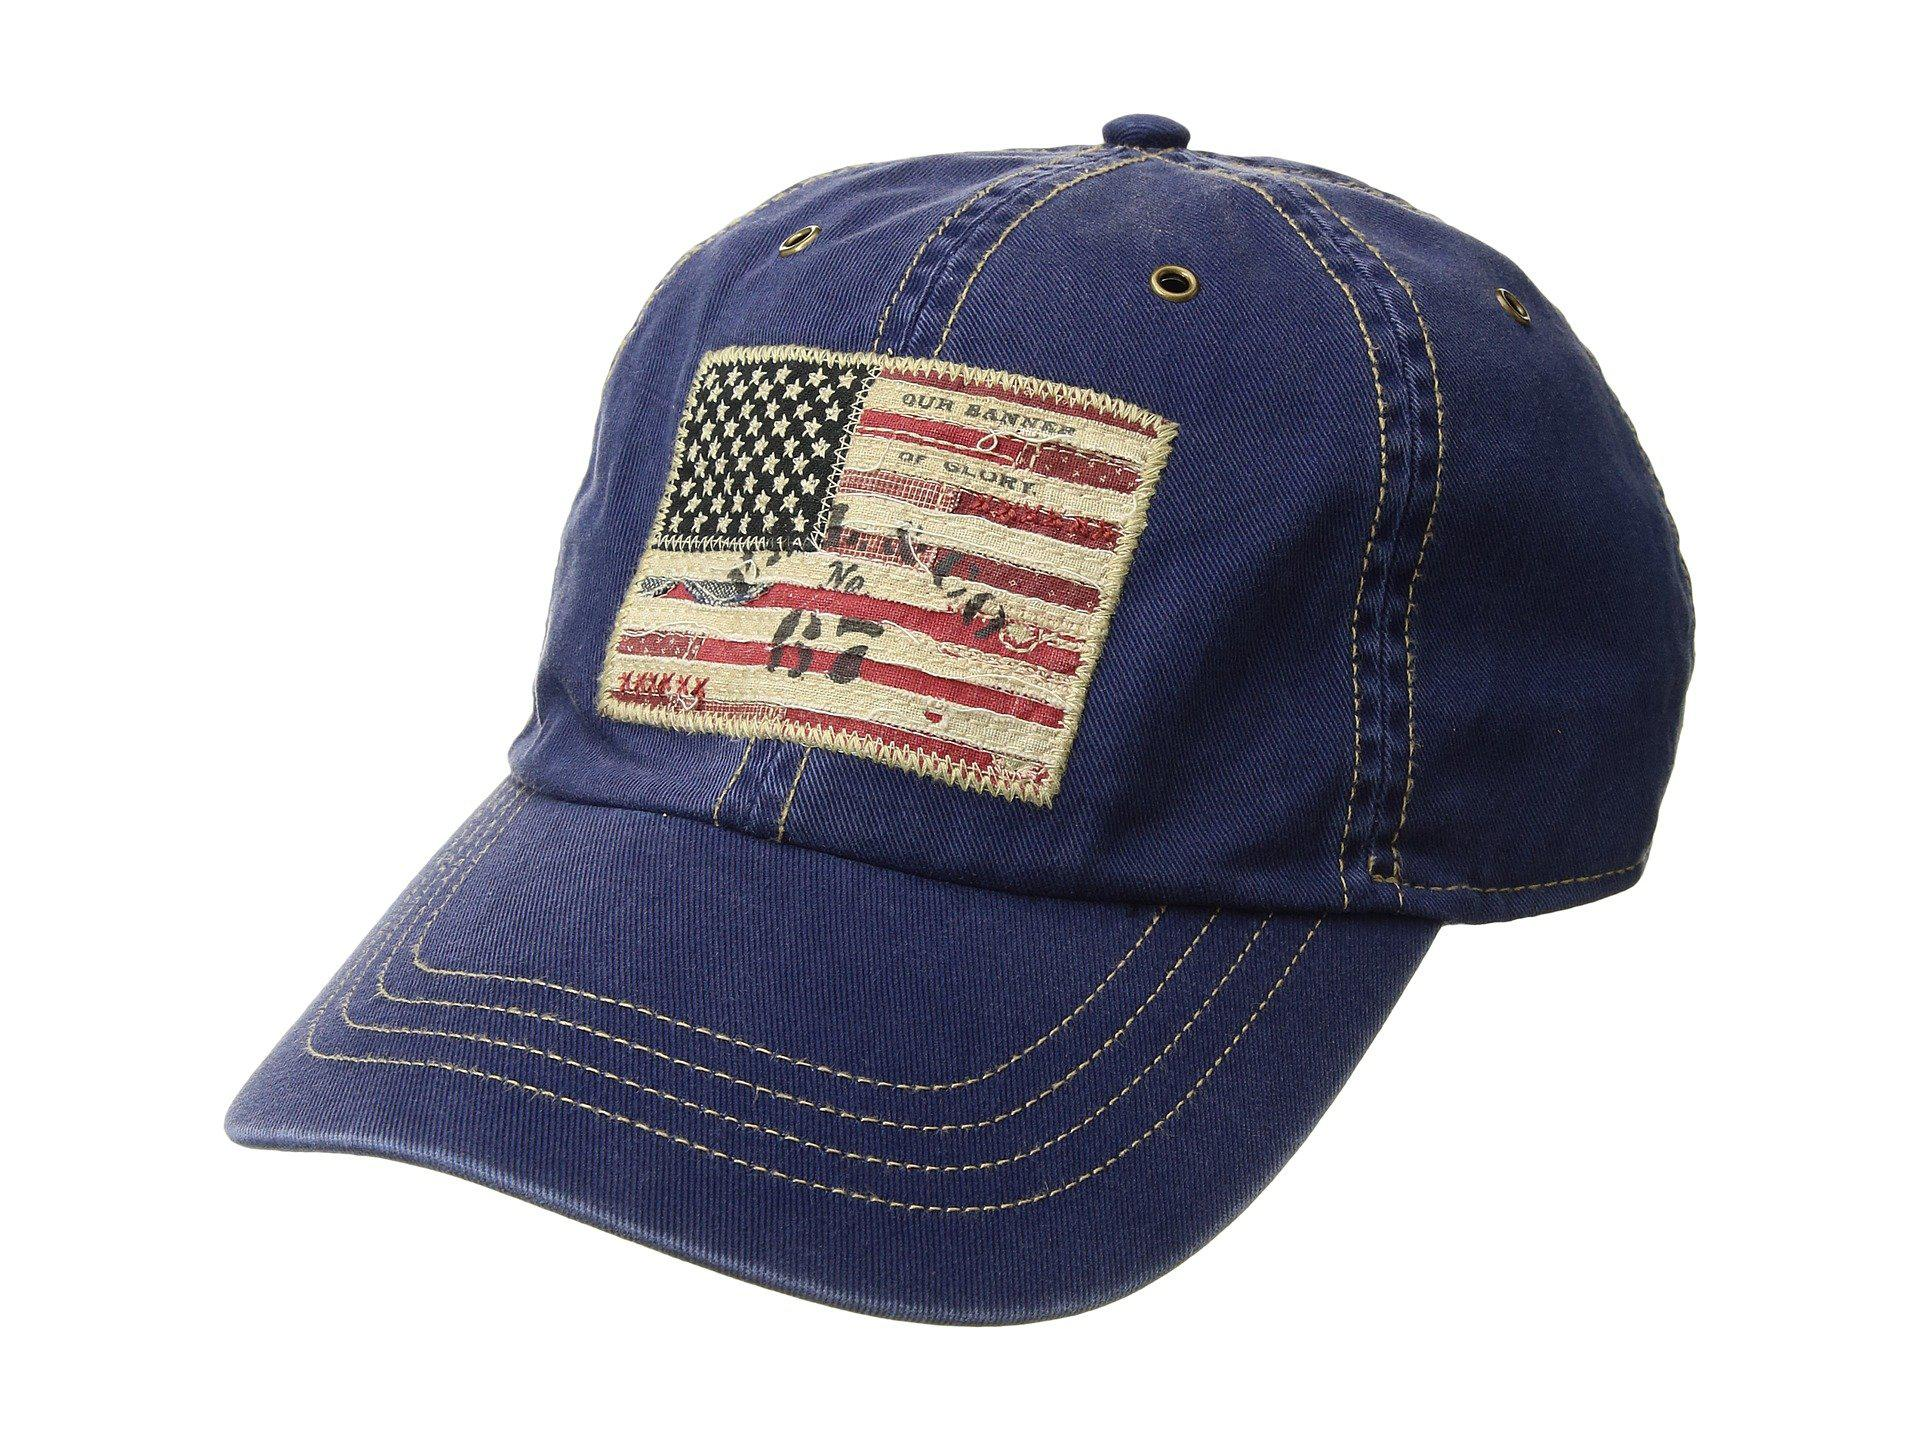 4655d15ed Lyst - Polo Ralph Lauren Cotton Chino Iconic Flag Cap in Blue for Men